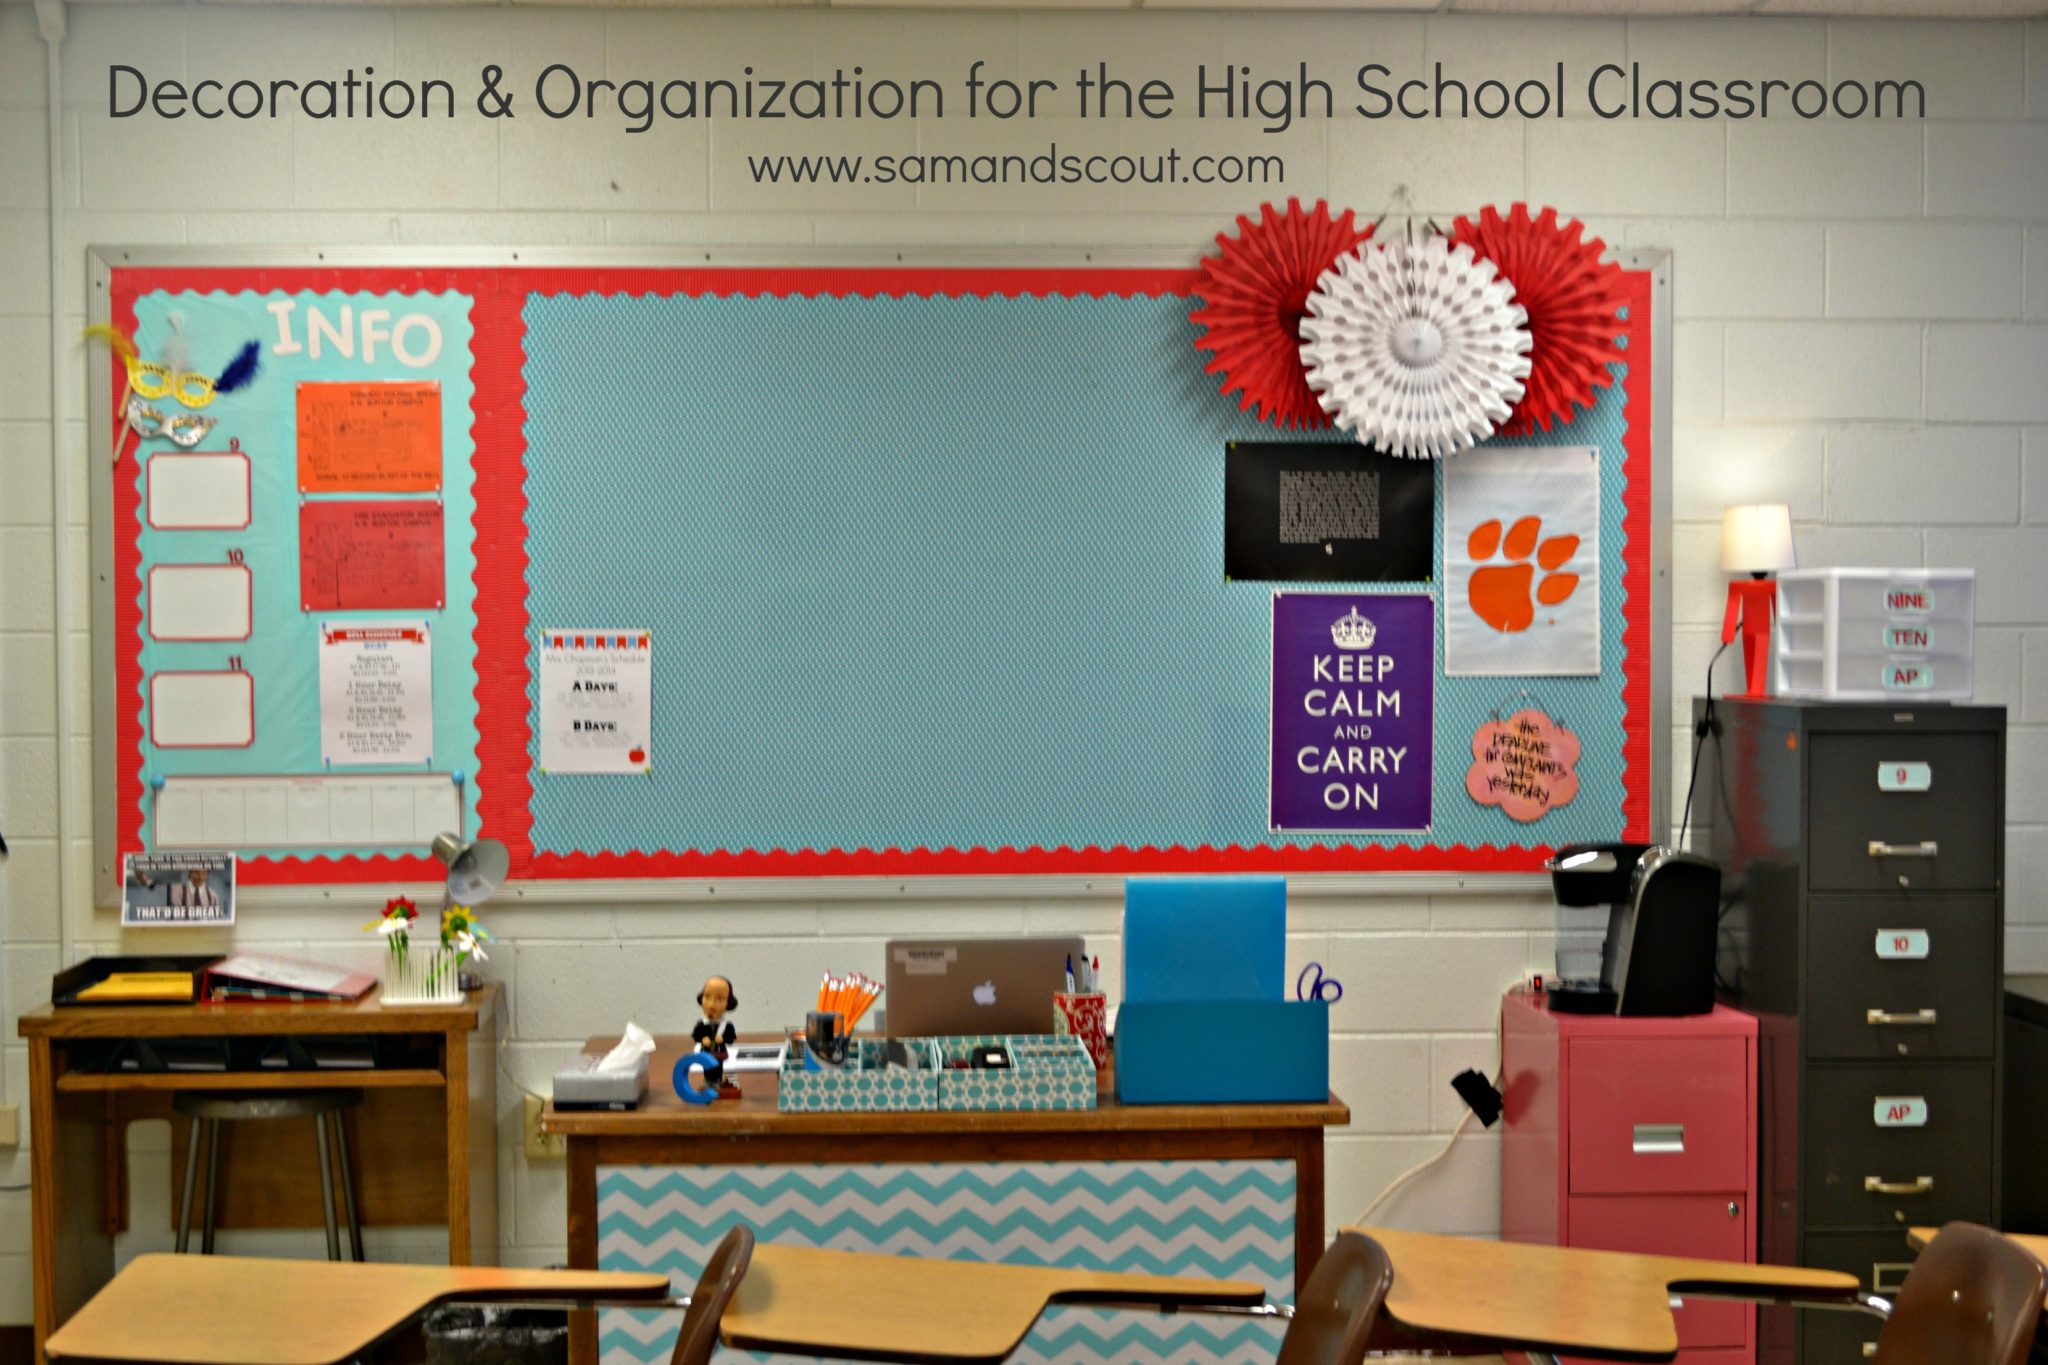 Classroom Decorating Themes Middle School ~ Creative classroom decorating ideas for middle school